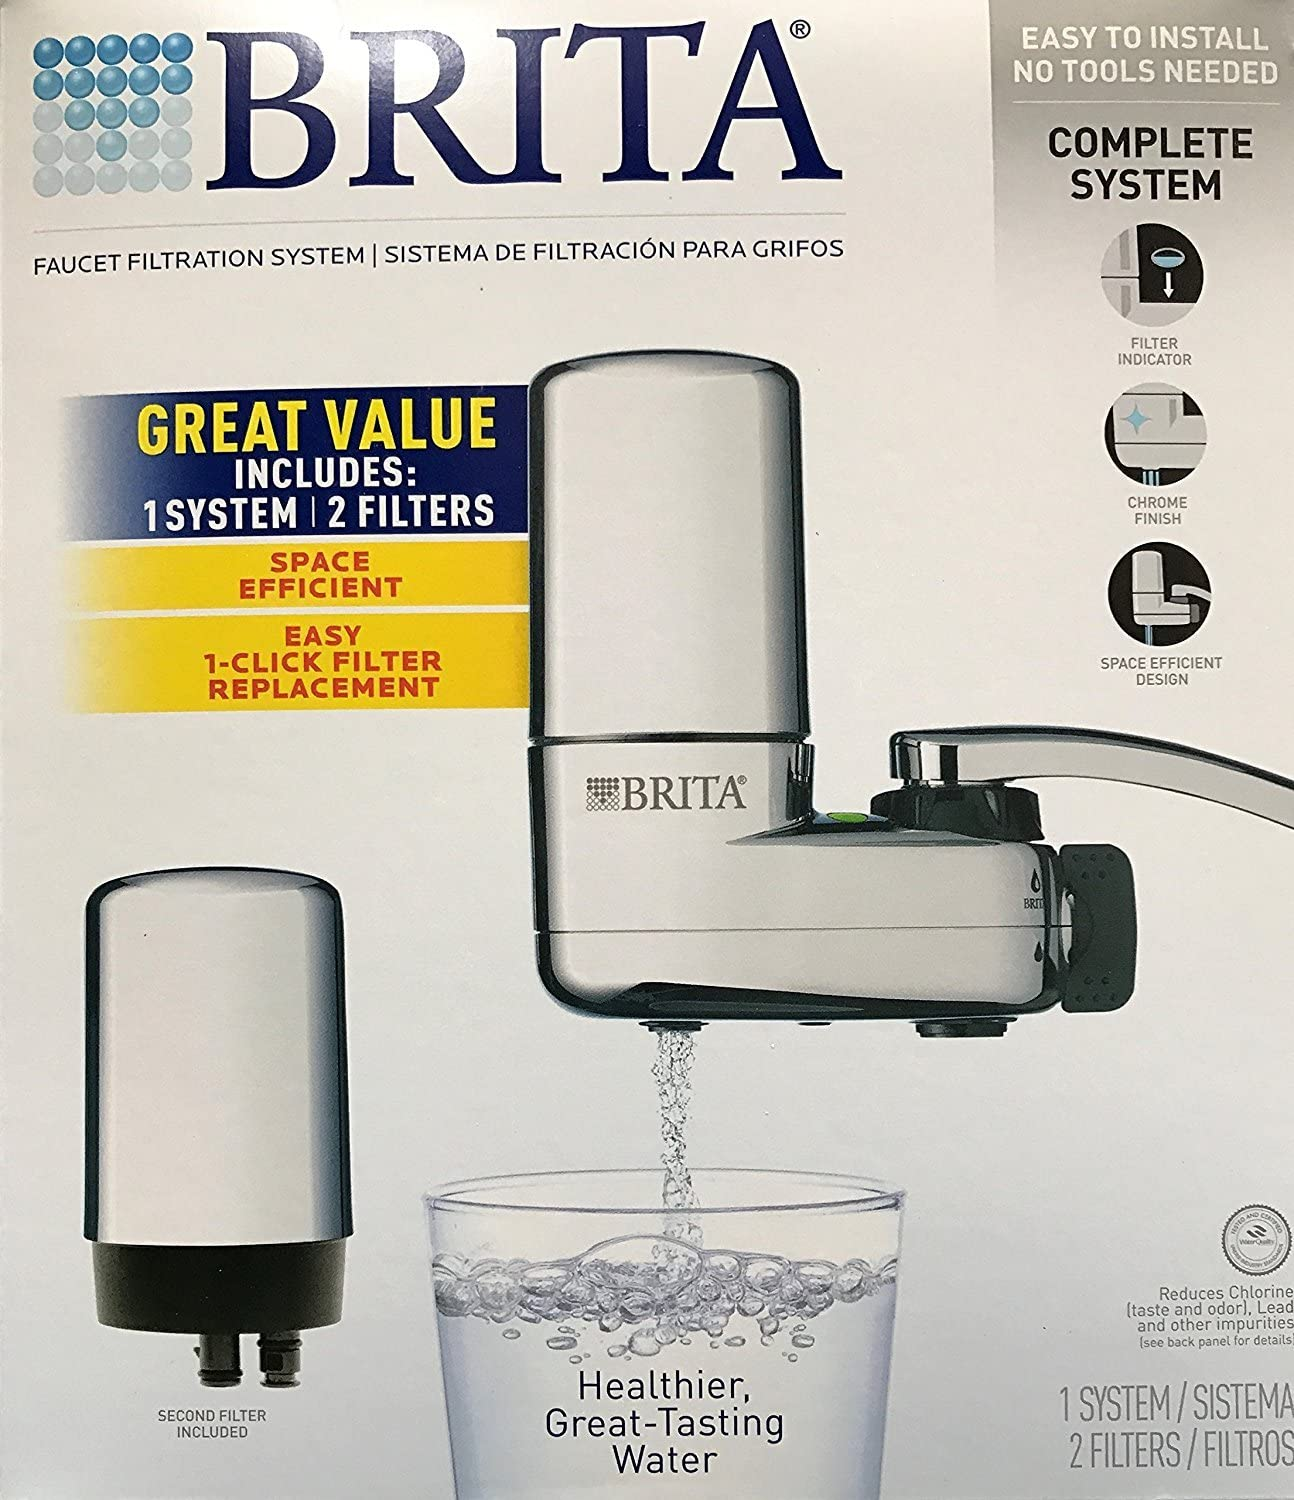 Brita – COMINHKR024903 Faucet Water Filter Reviews